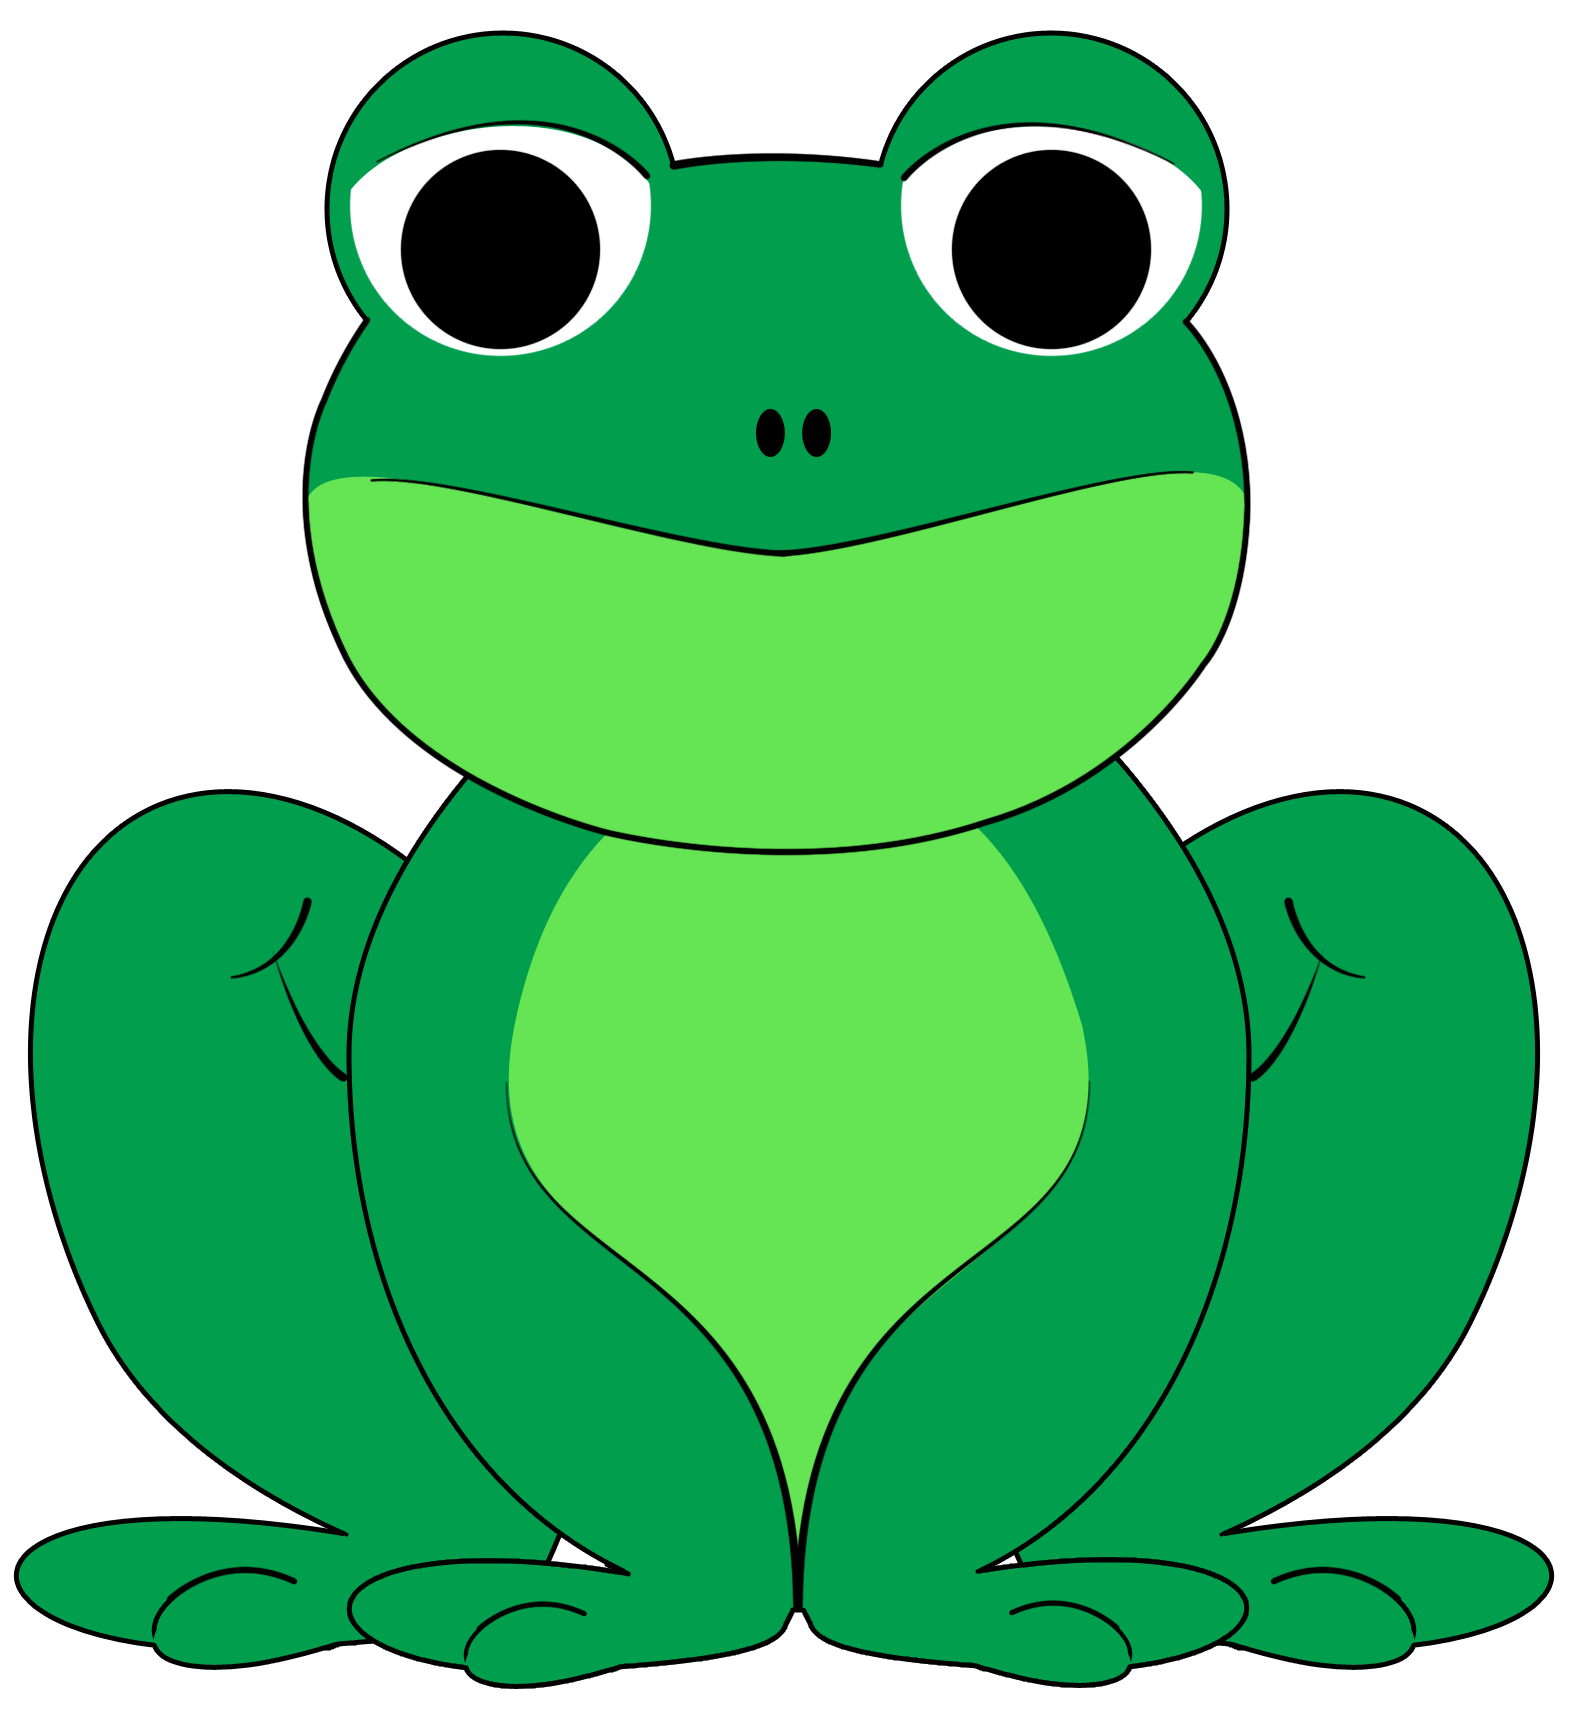 Disney the princess and frog crown clipart vector free Frog Prince Silhouette at GetDrawings.com | Free for personal use ... vector free